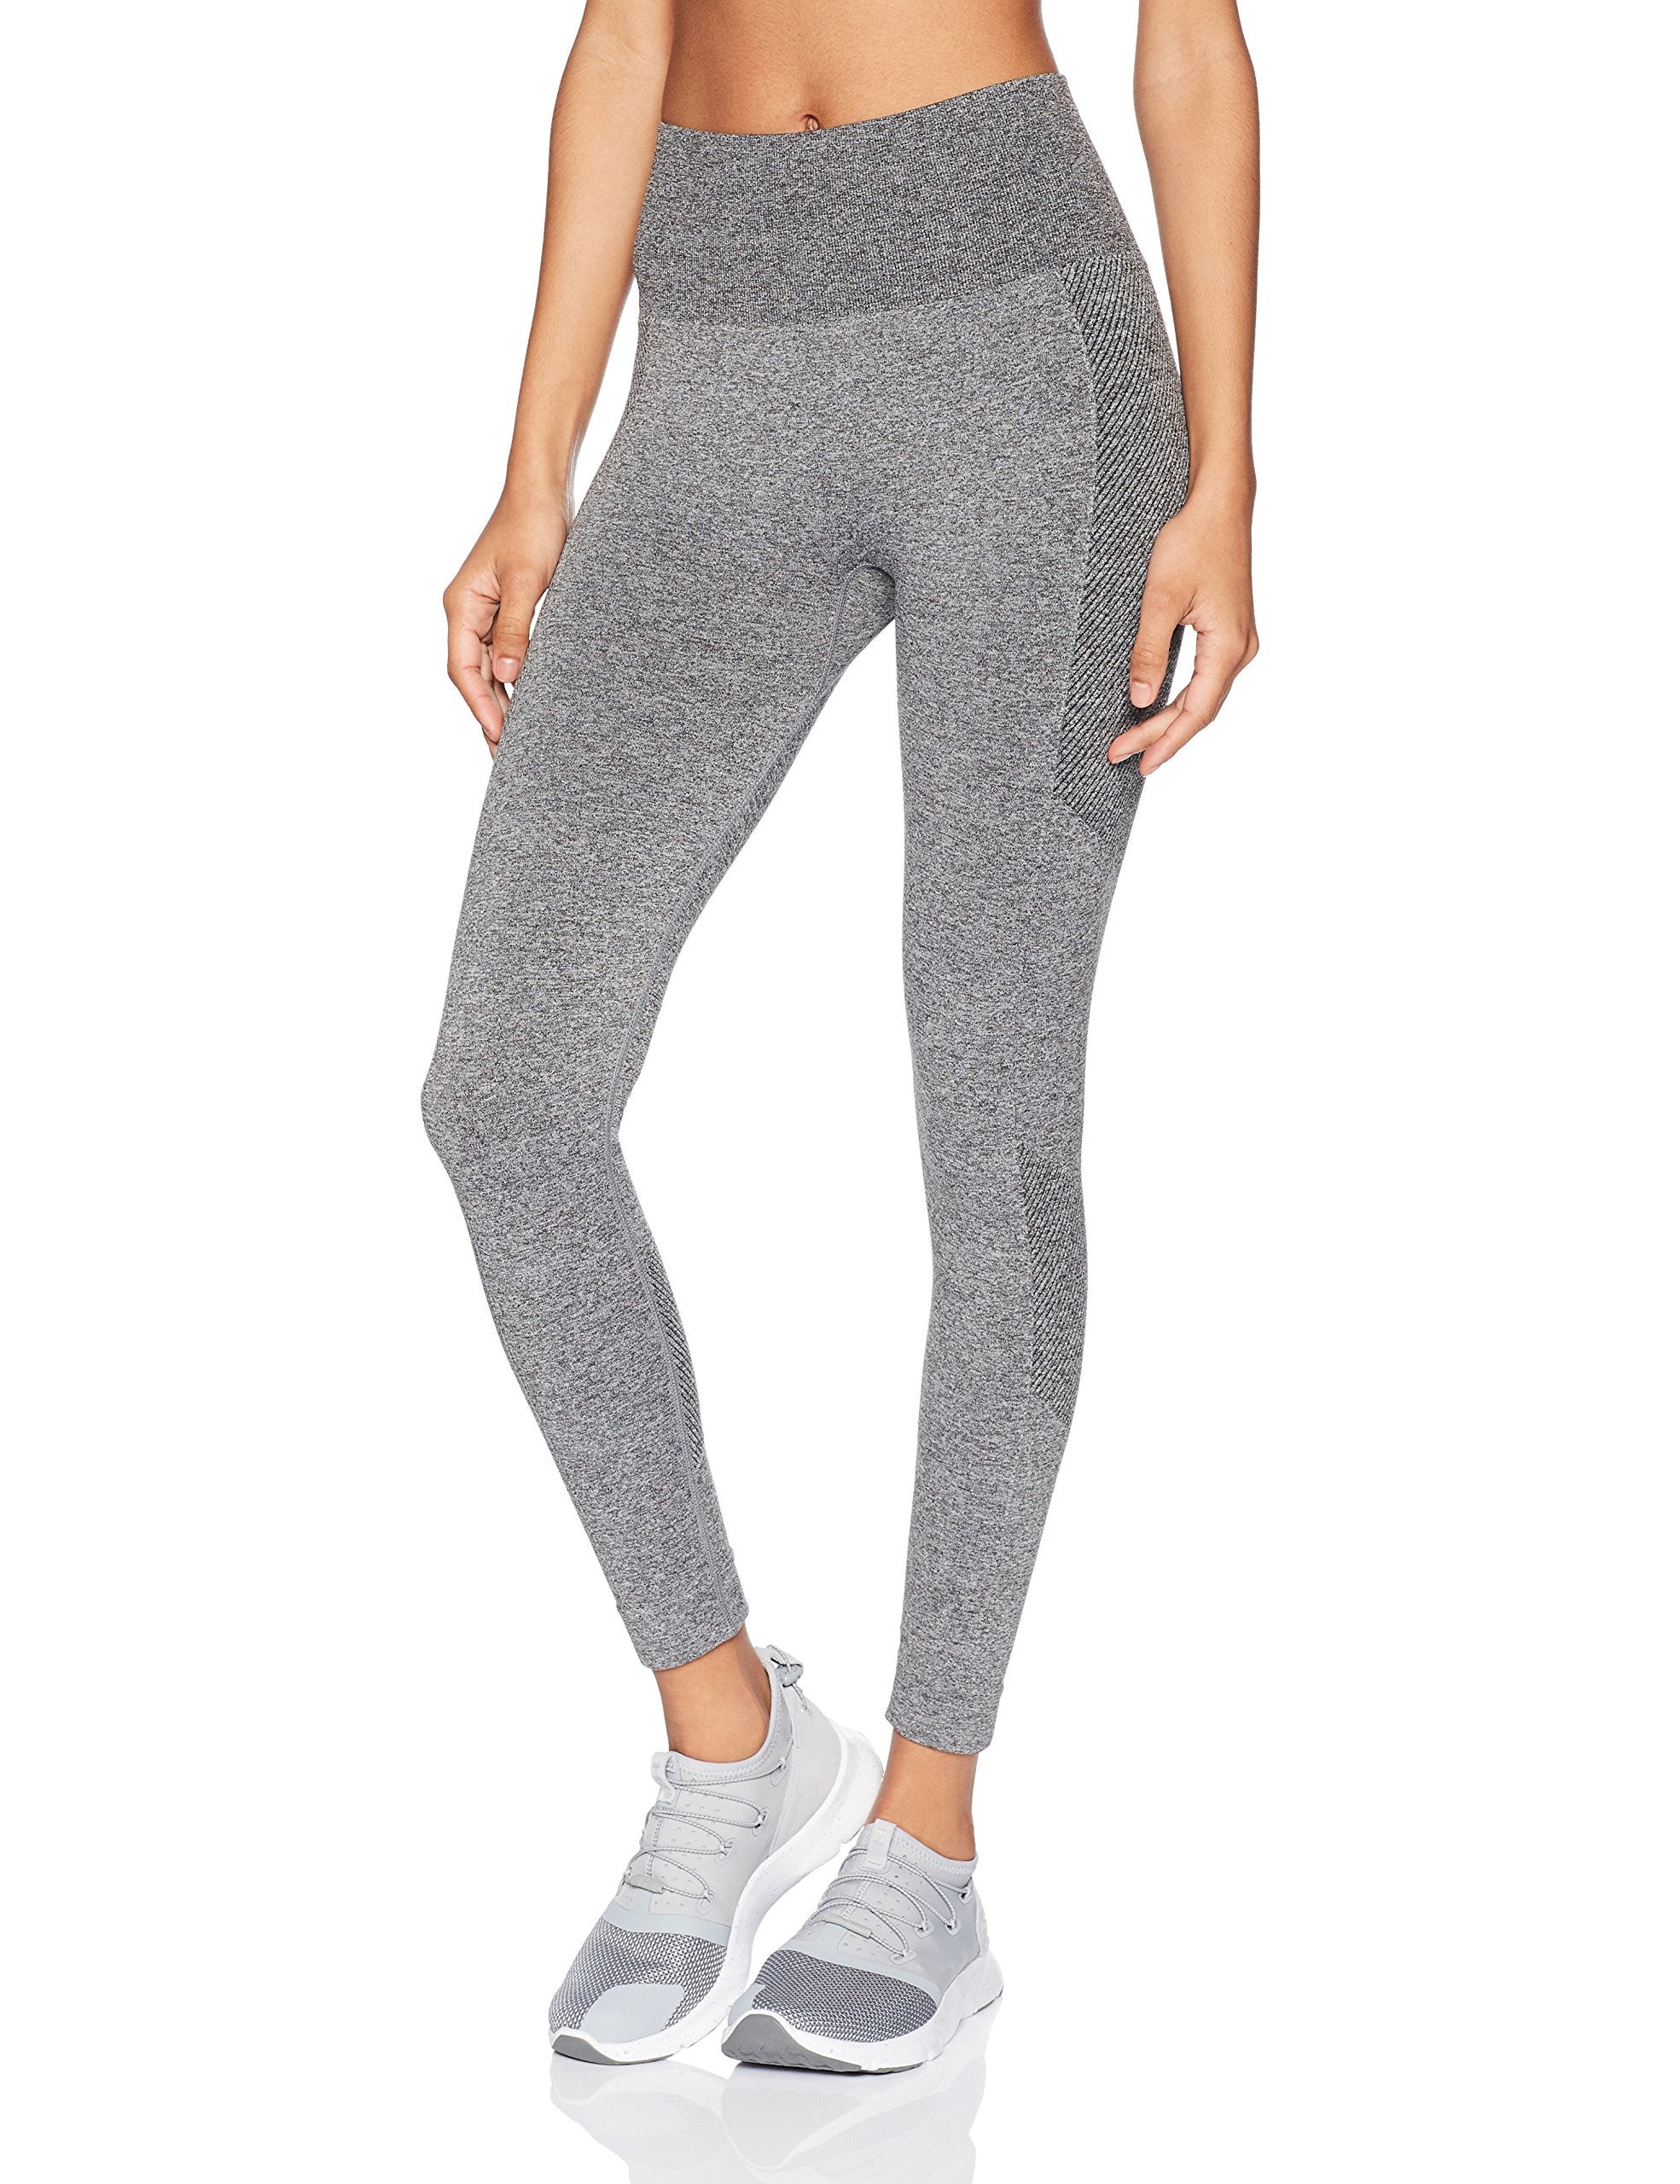 Exclusive Starter Womens 25 Seamless Light-Compression Cropped Workout Legging